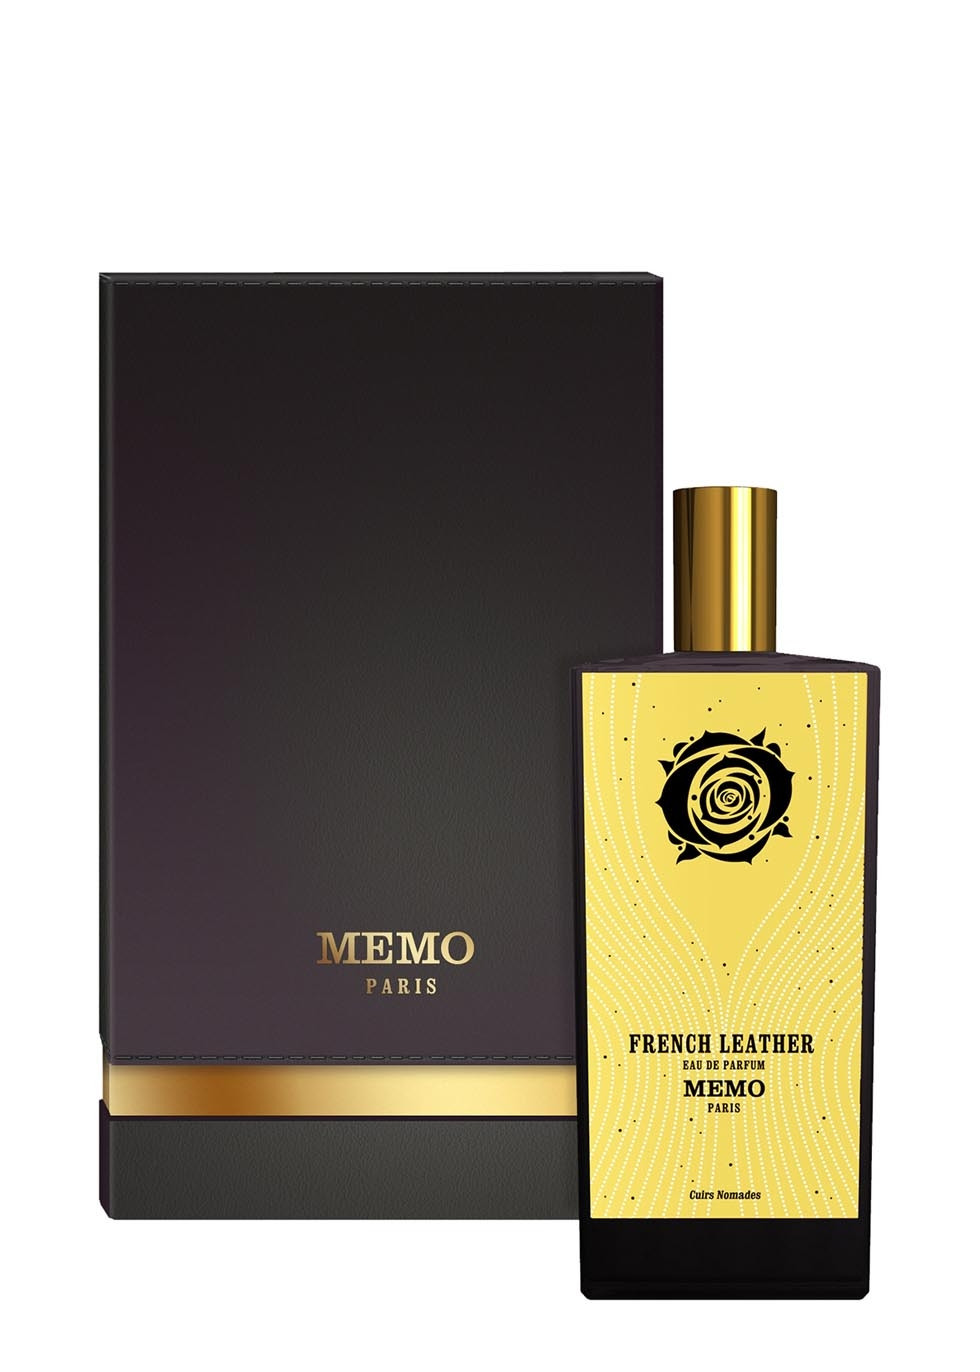 MEMO PARIS | French Leather | Cult Beauty